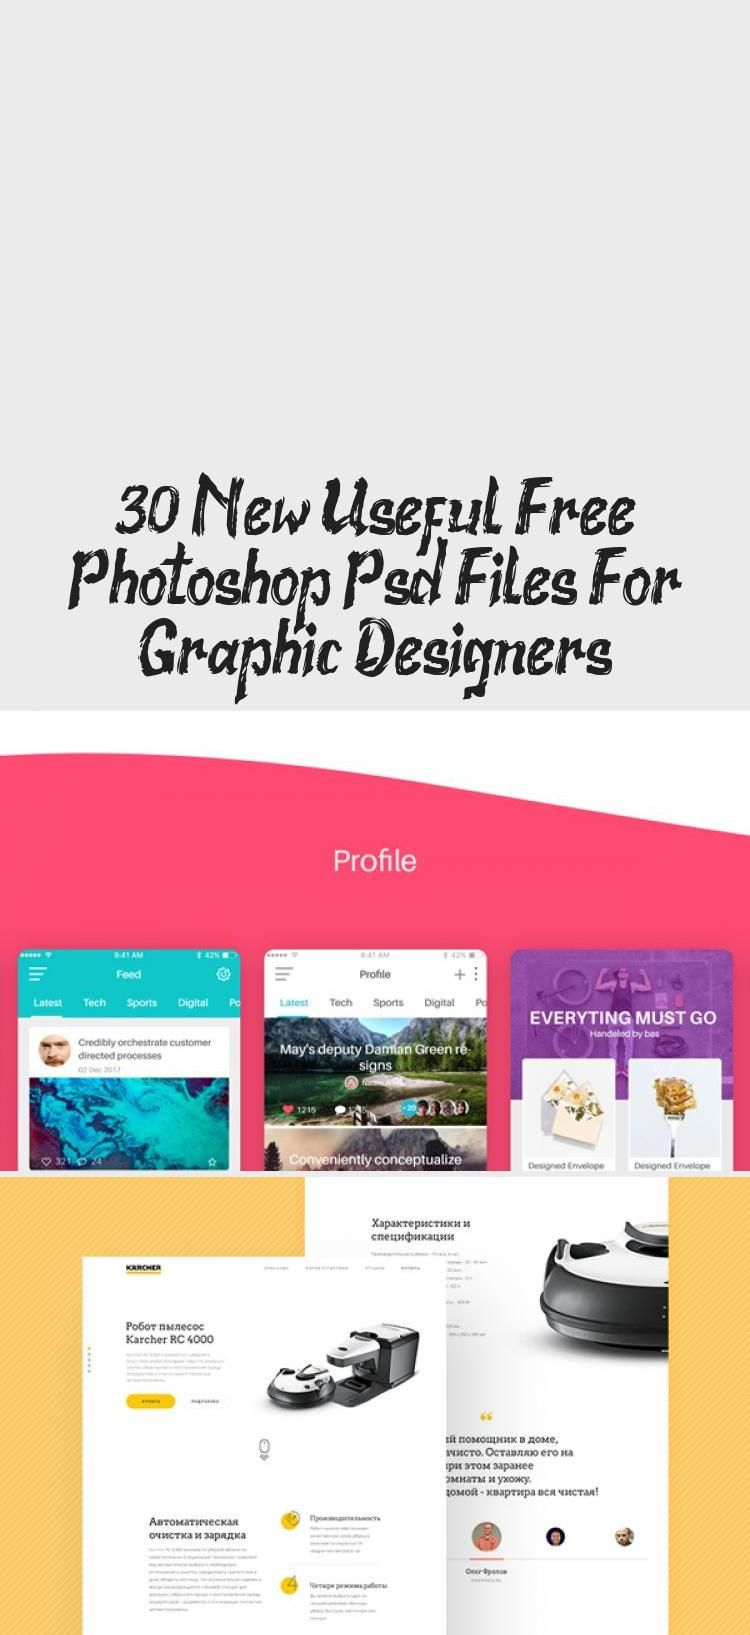 30 New Useful Free Photoshop Psd Files For Graphic Designers - Design